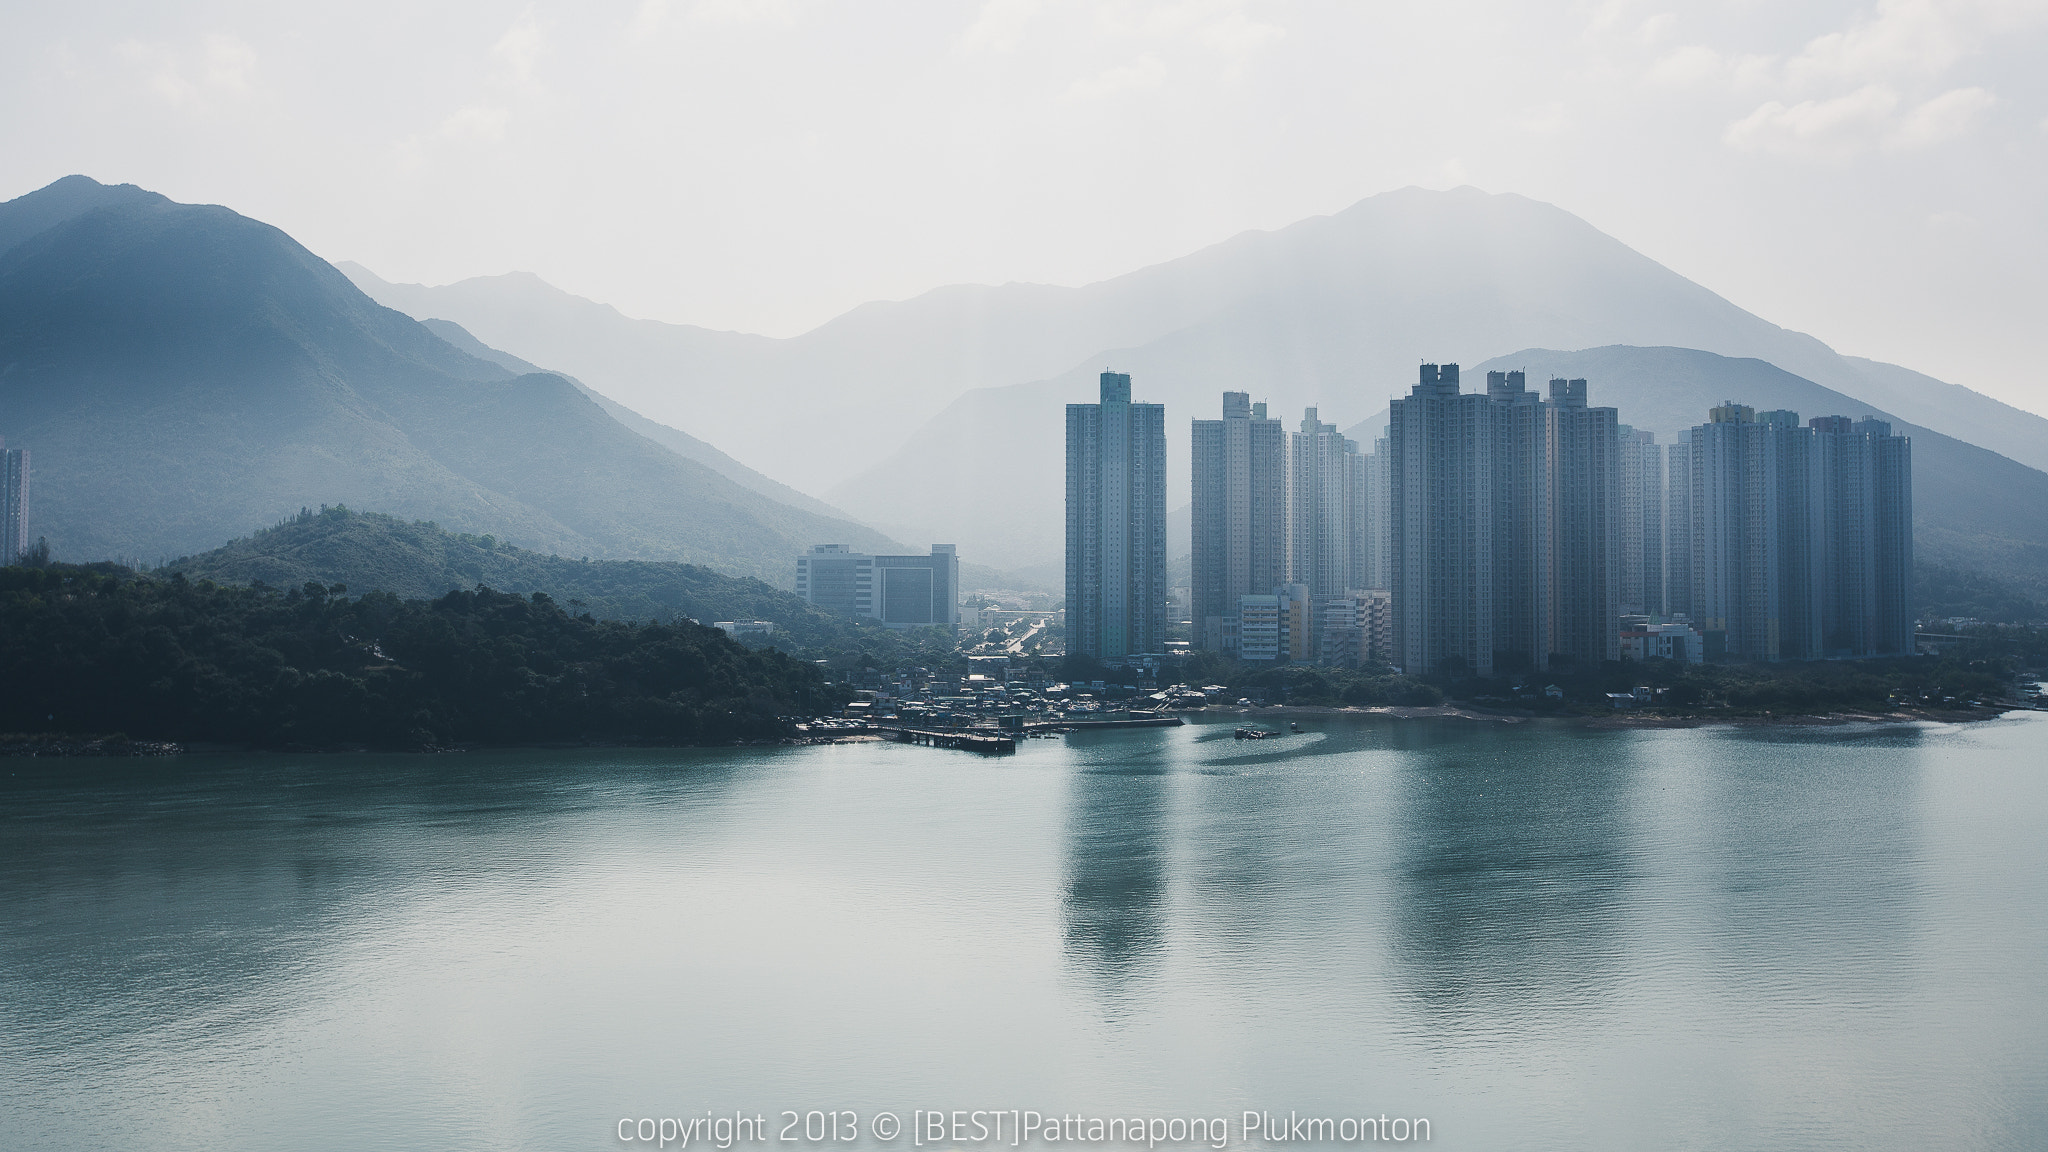 Photograph Hongkong's apartments by Best Pattanapong Plukmonton on 500px